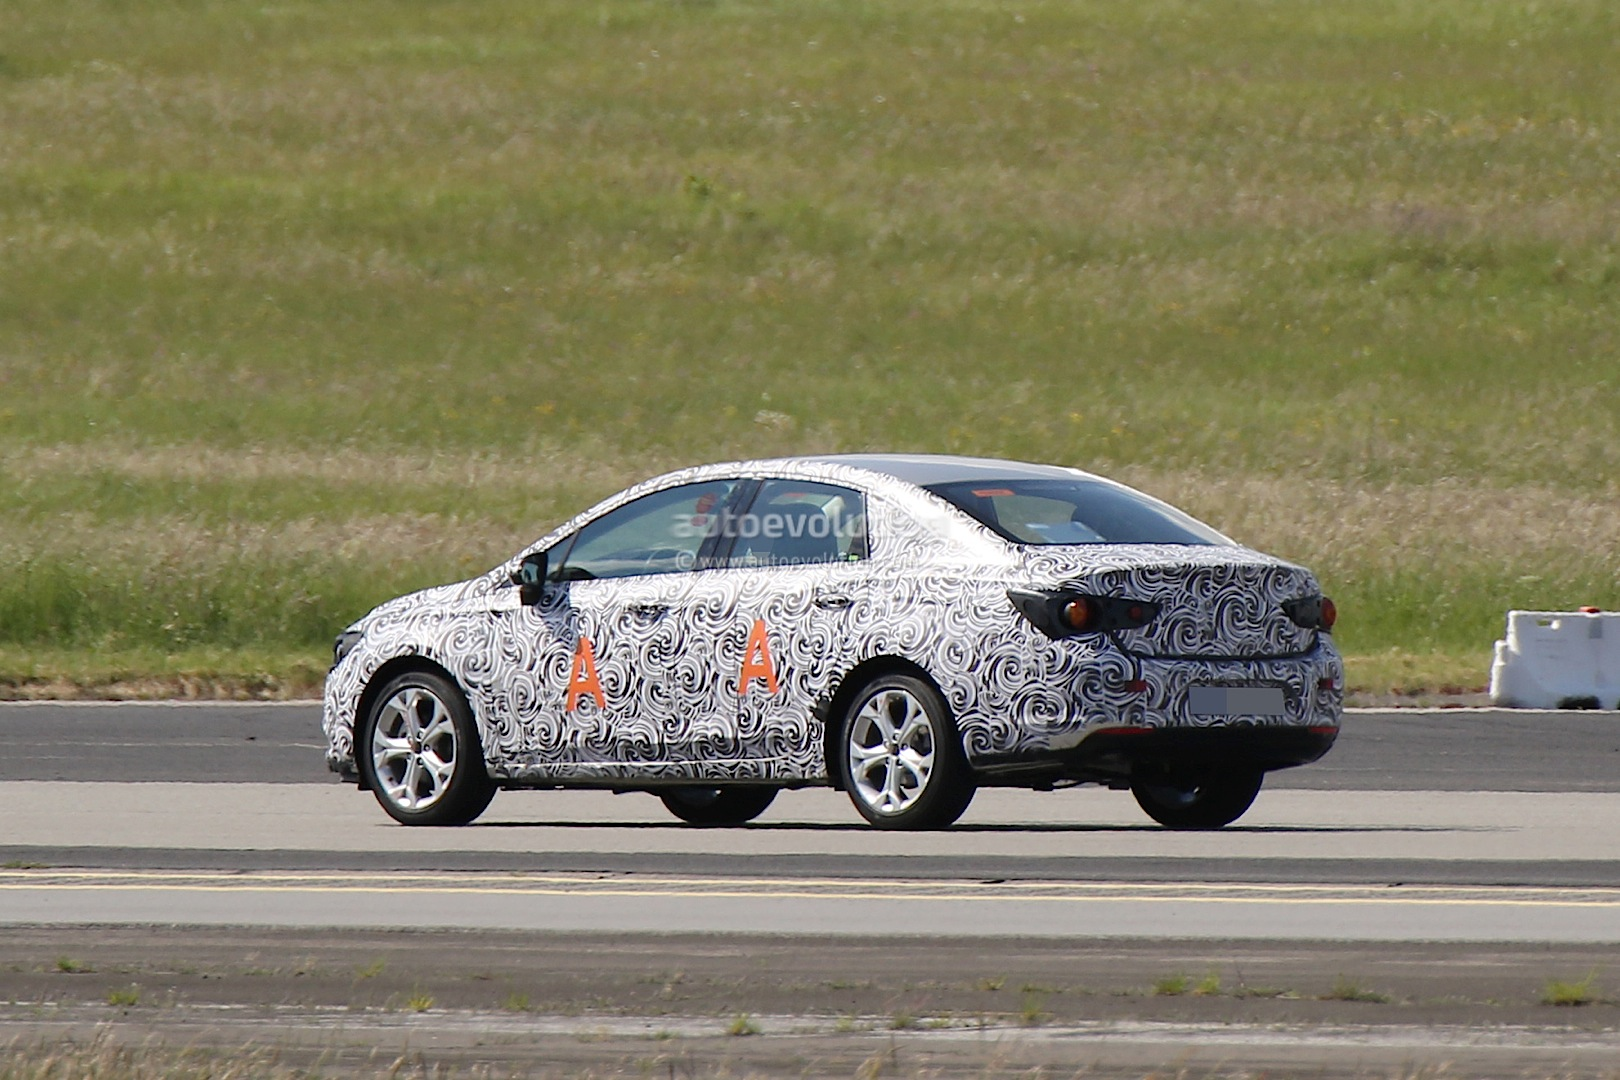 Buick Dealership Corpus Christi >> What Kind Of Oil In A Verano | Autos Post